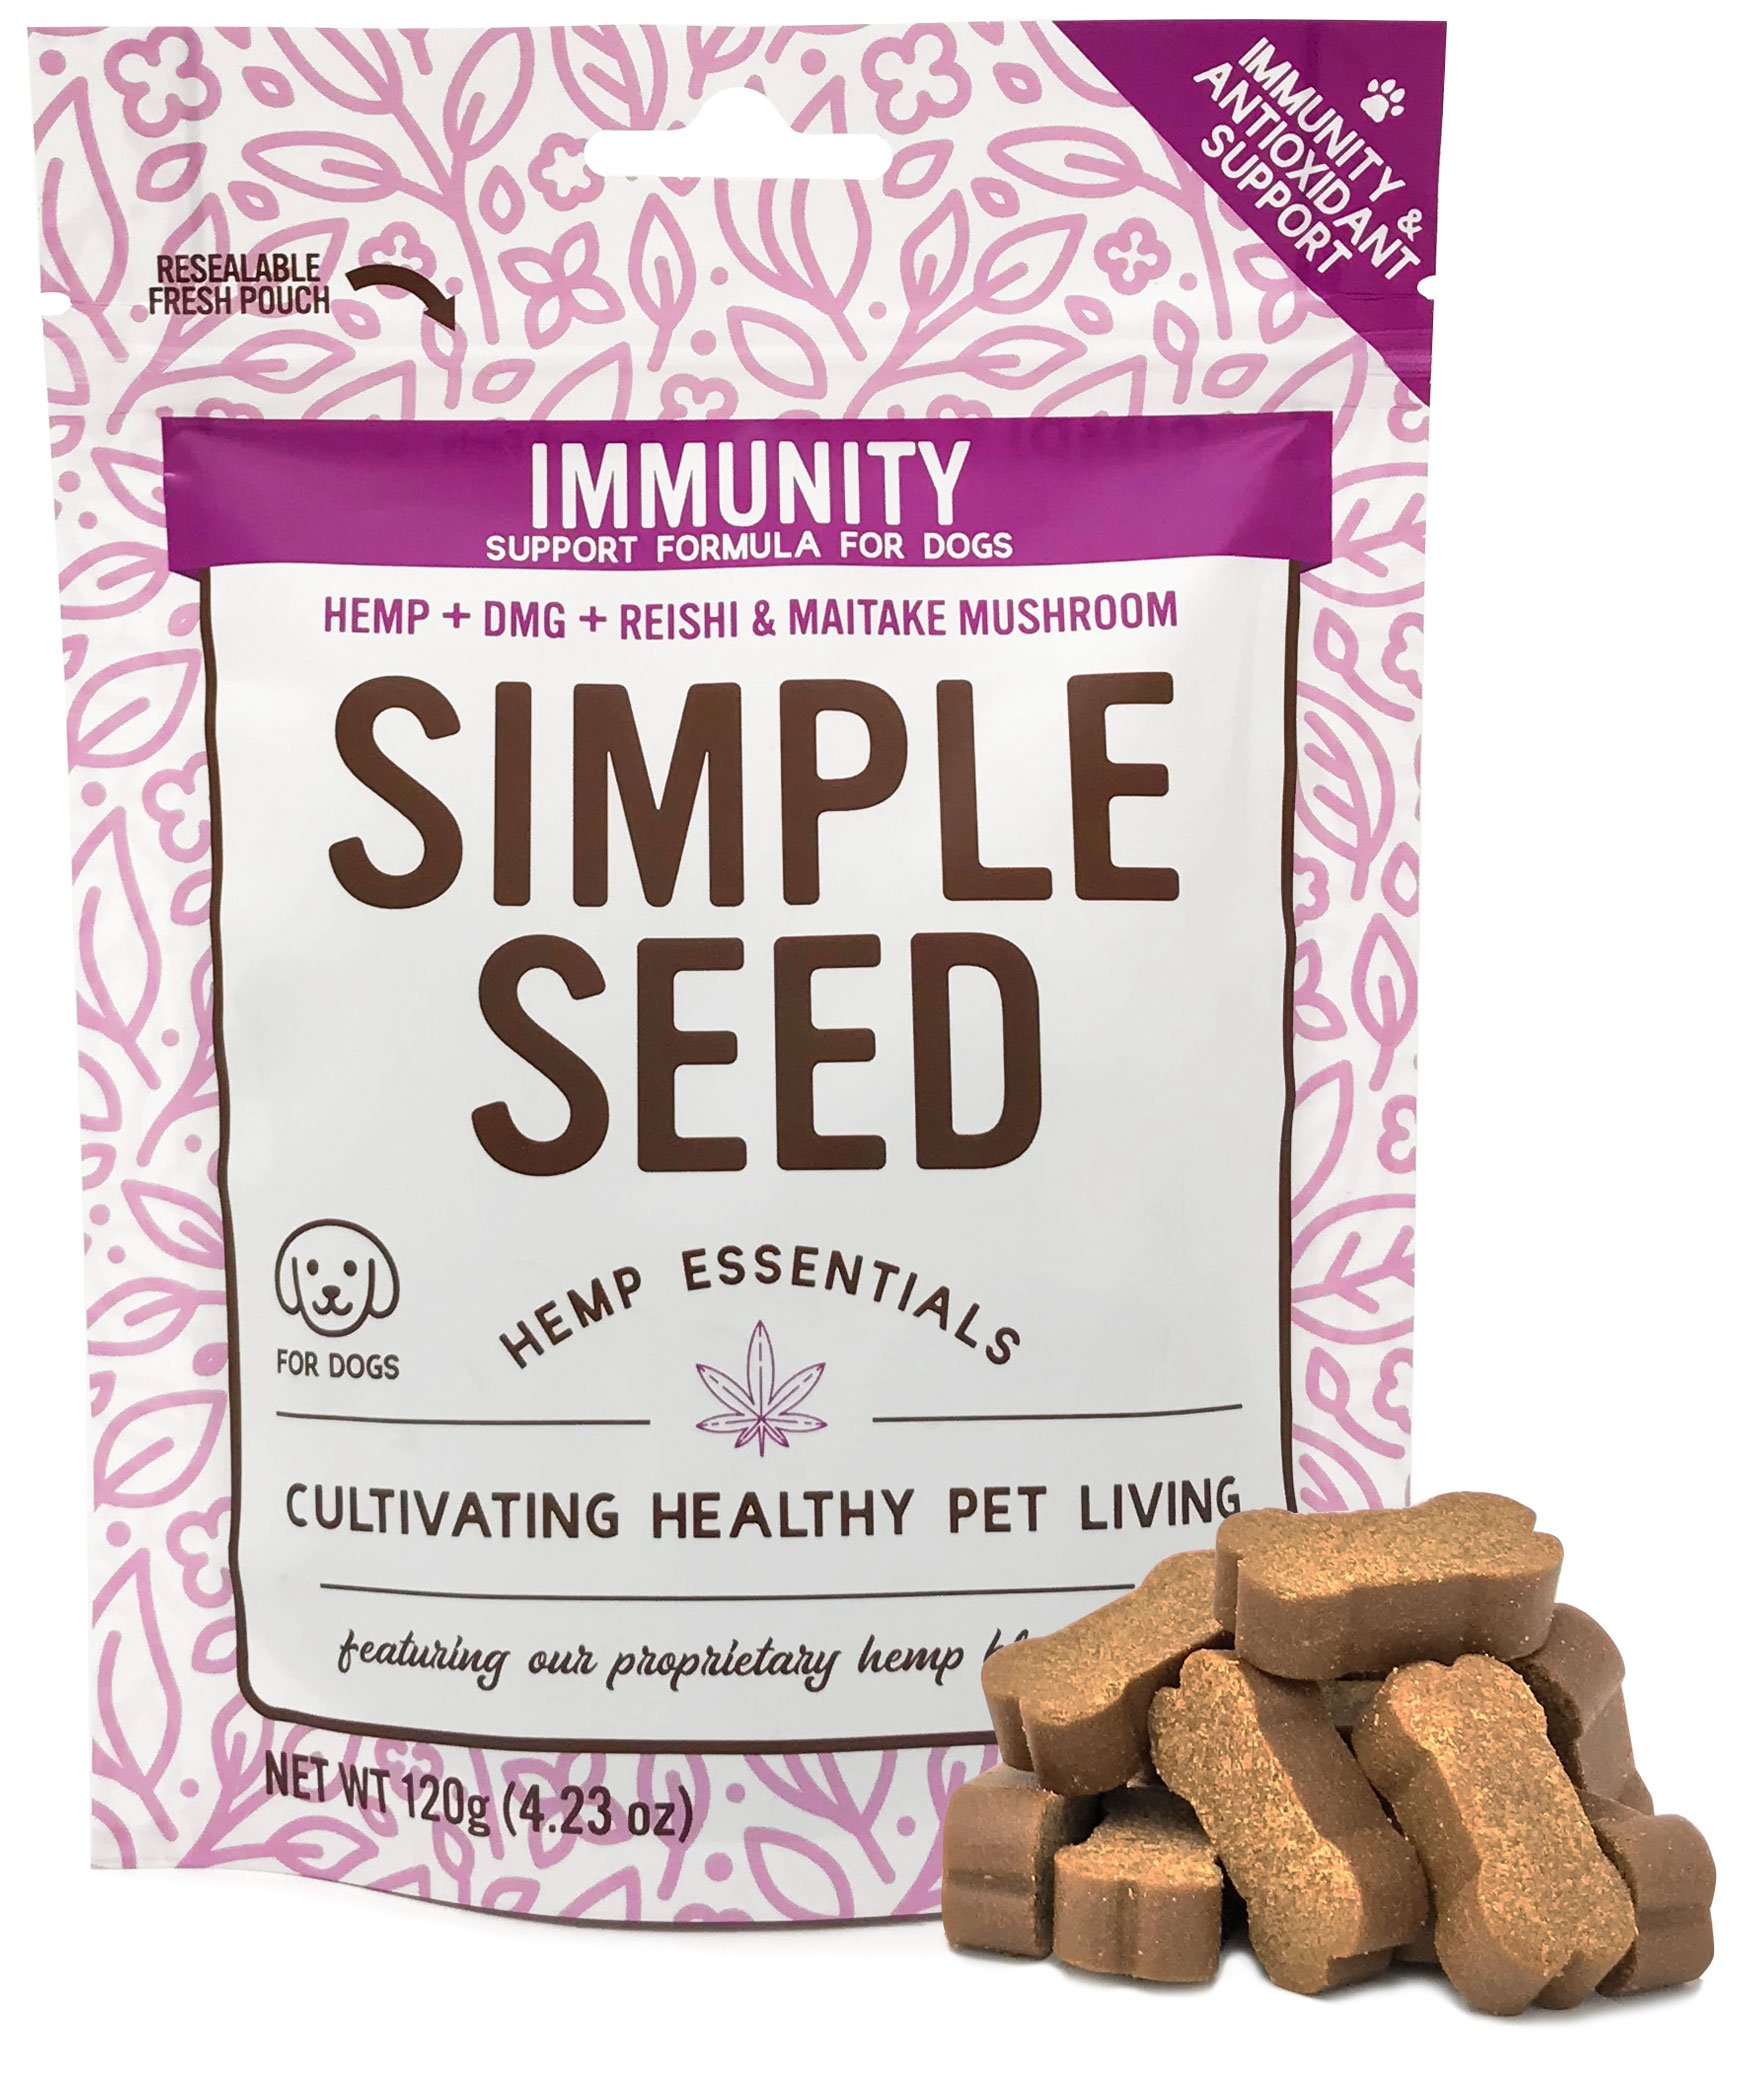 Hemp Allergy Immune Supplement for Dogs with Reishi Mushroom, Maitake Mushroom, Hemp Oil, and DMG by Simple Seed, 30 Soft Chews by Vetonic